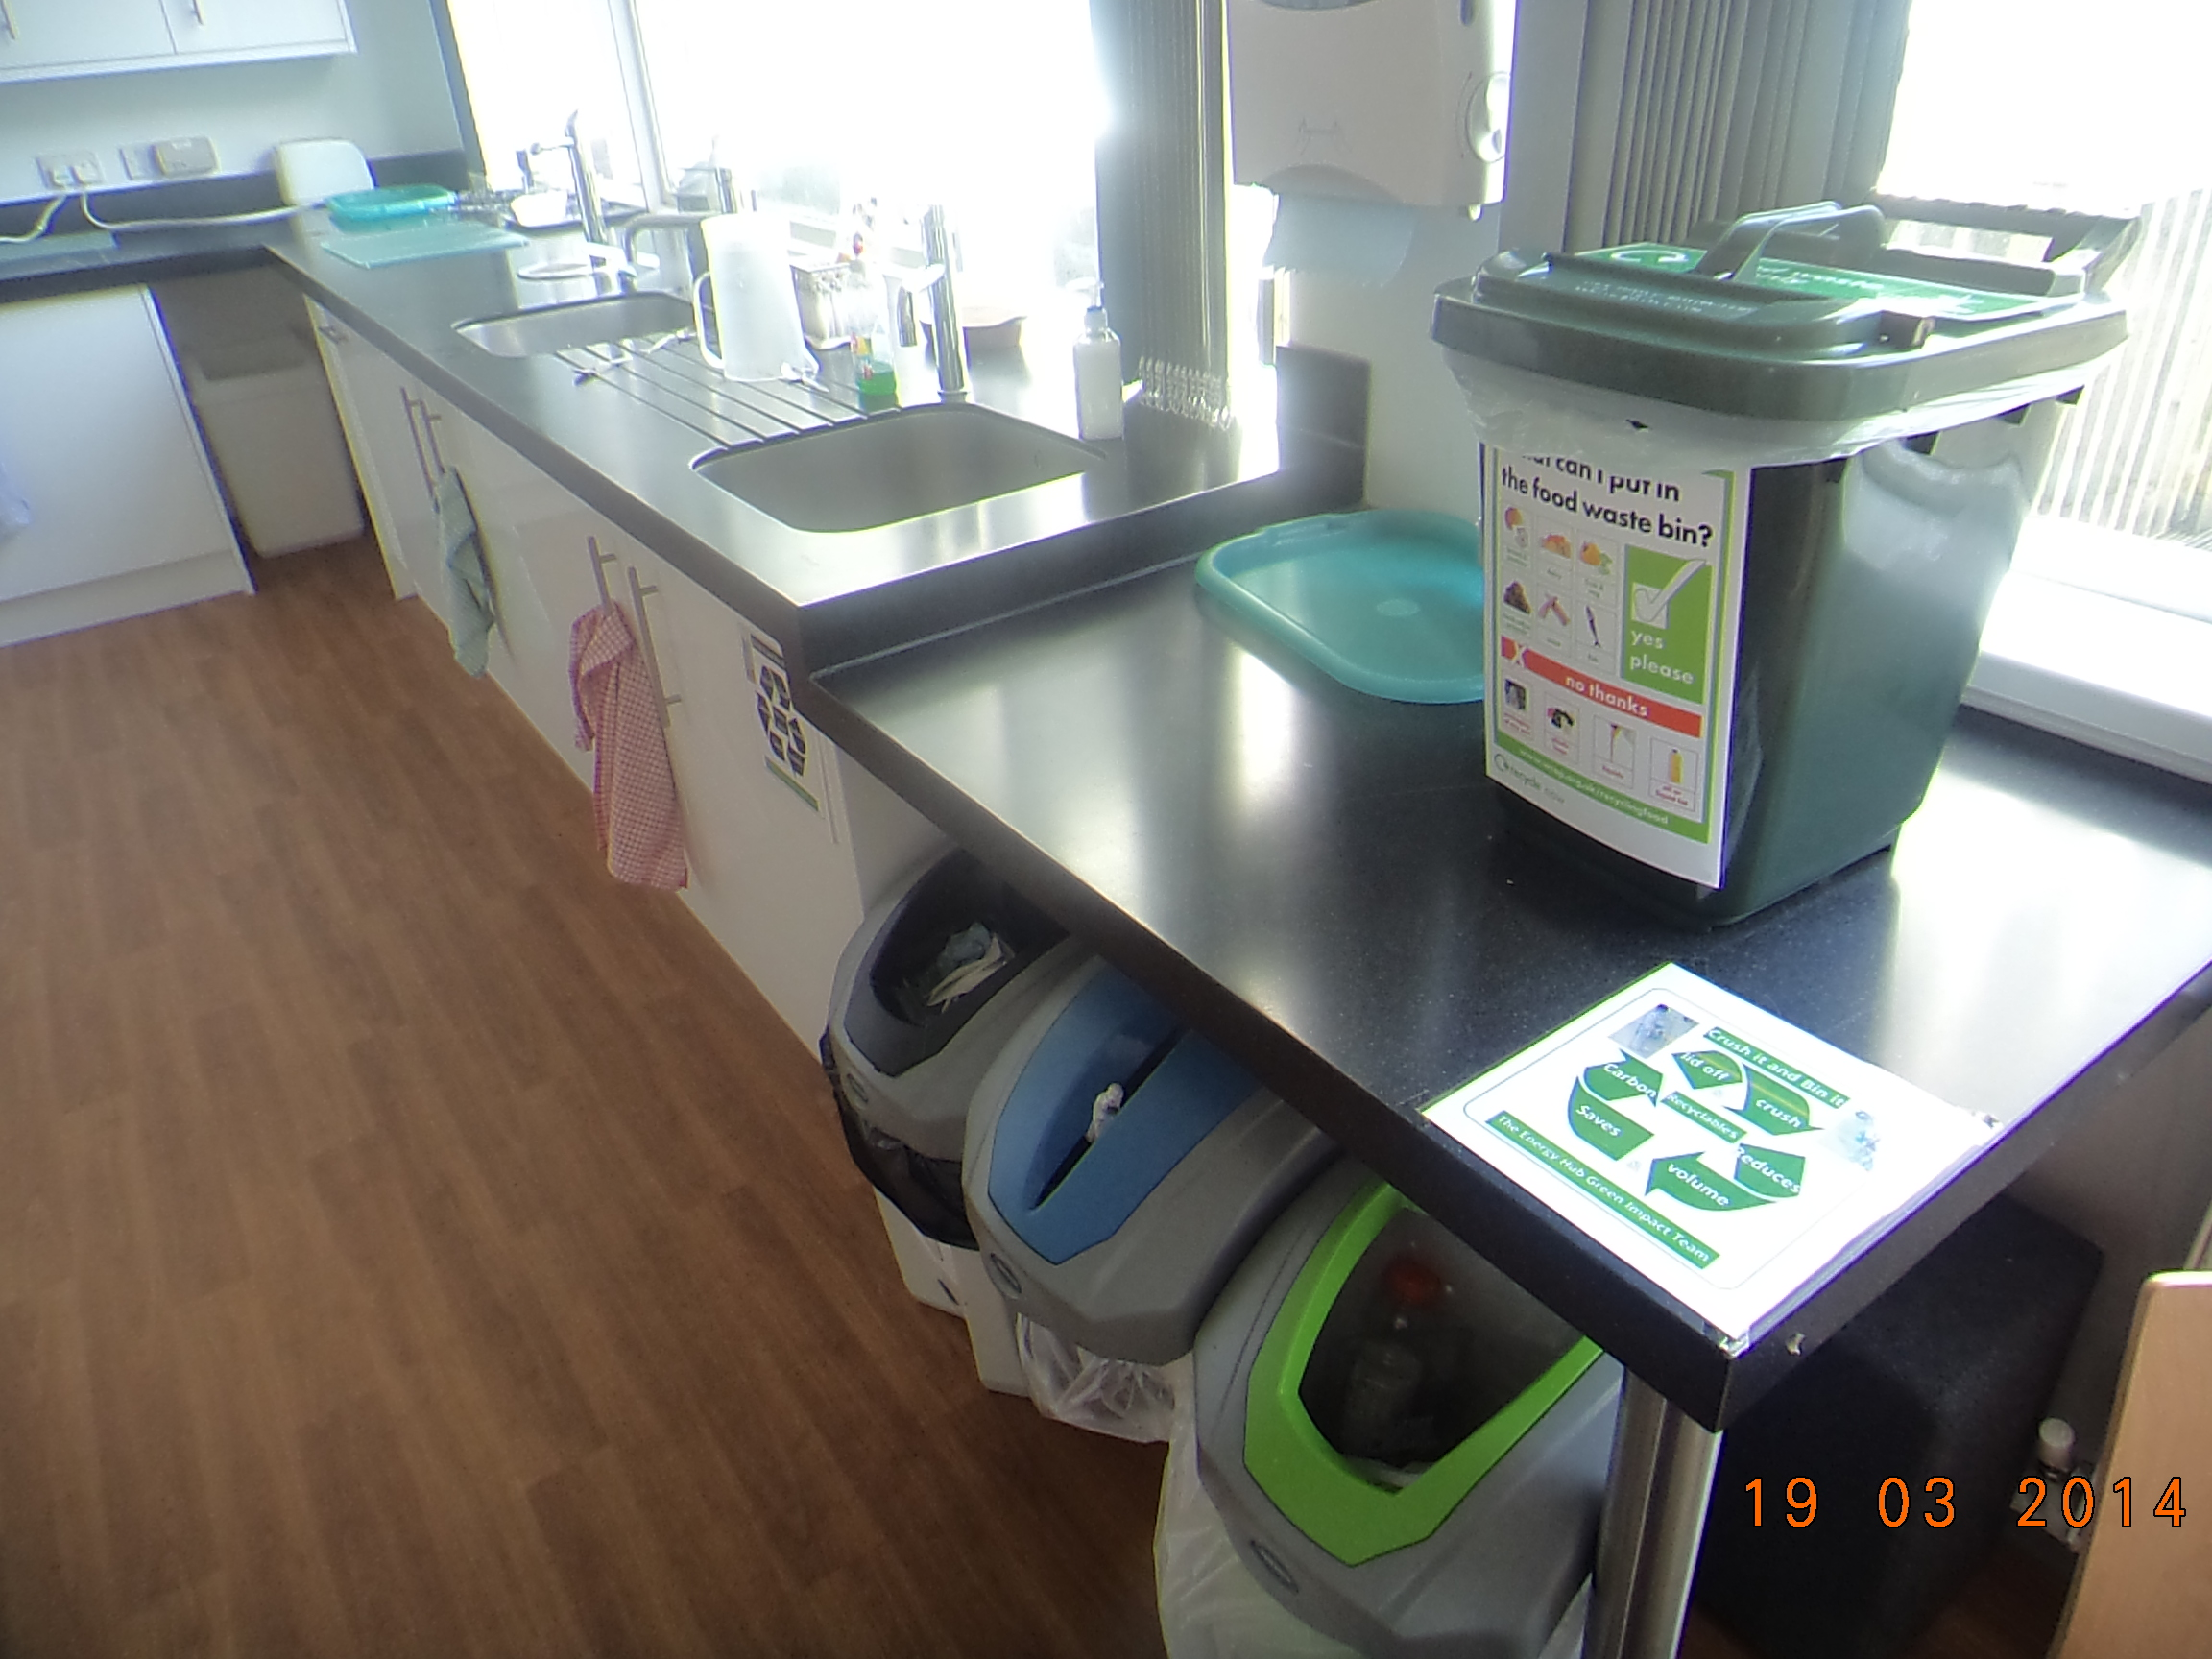 Crescent House composting bin takes pride of place!